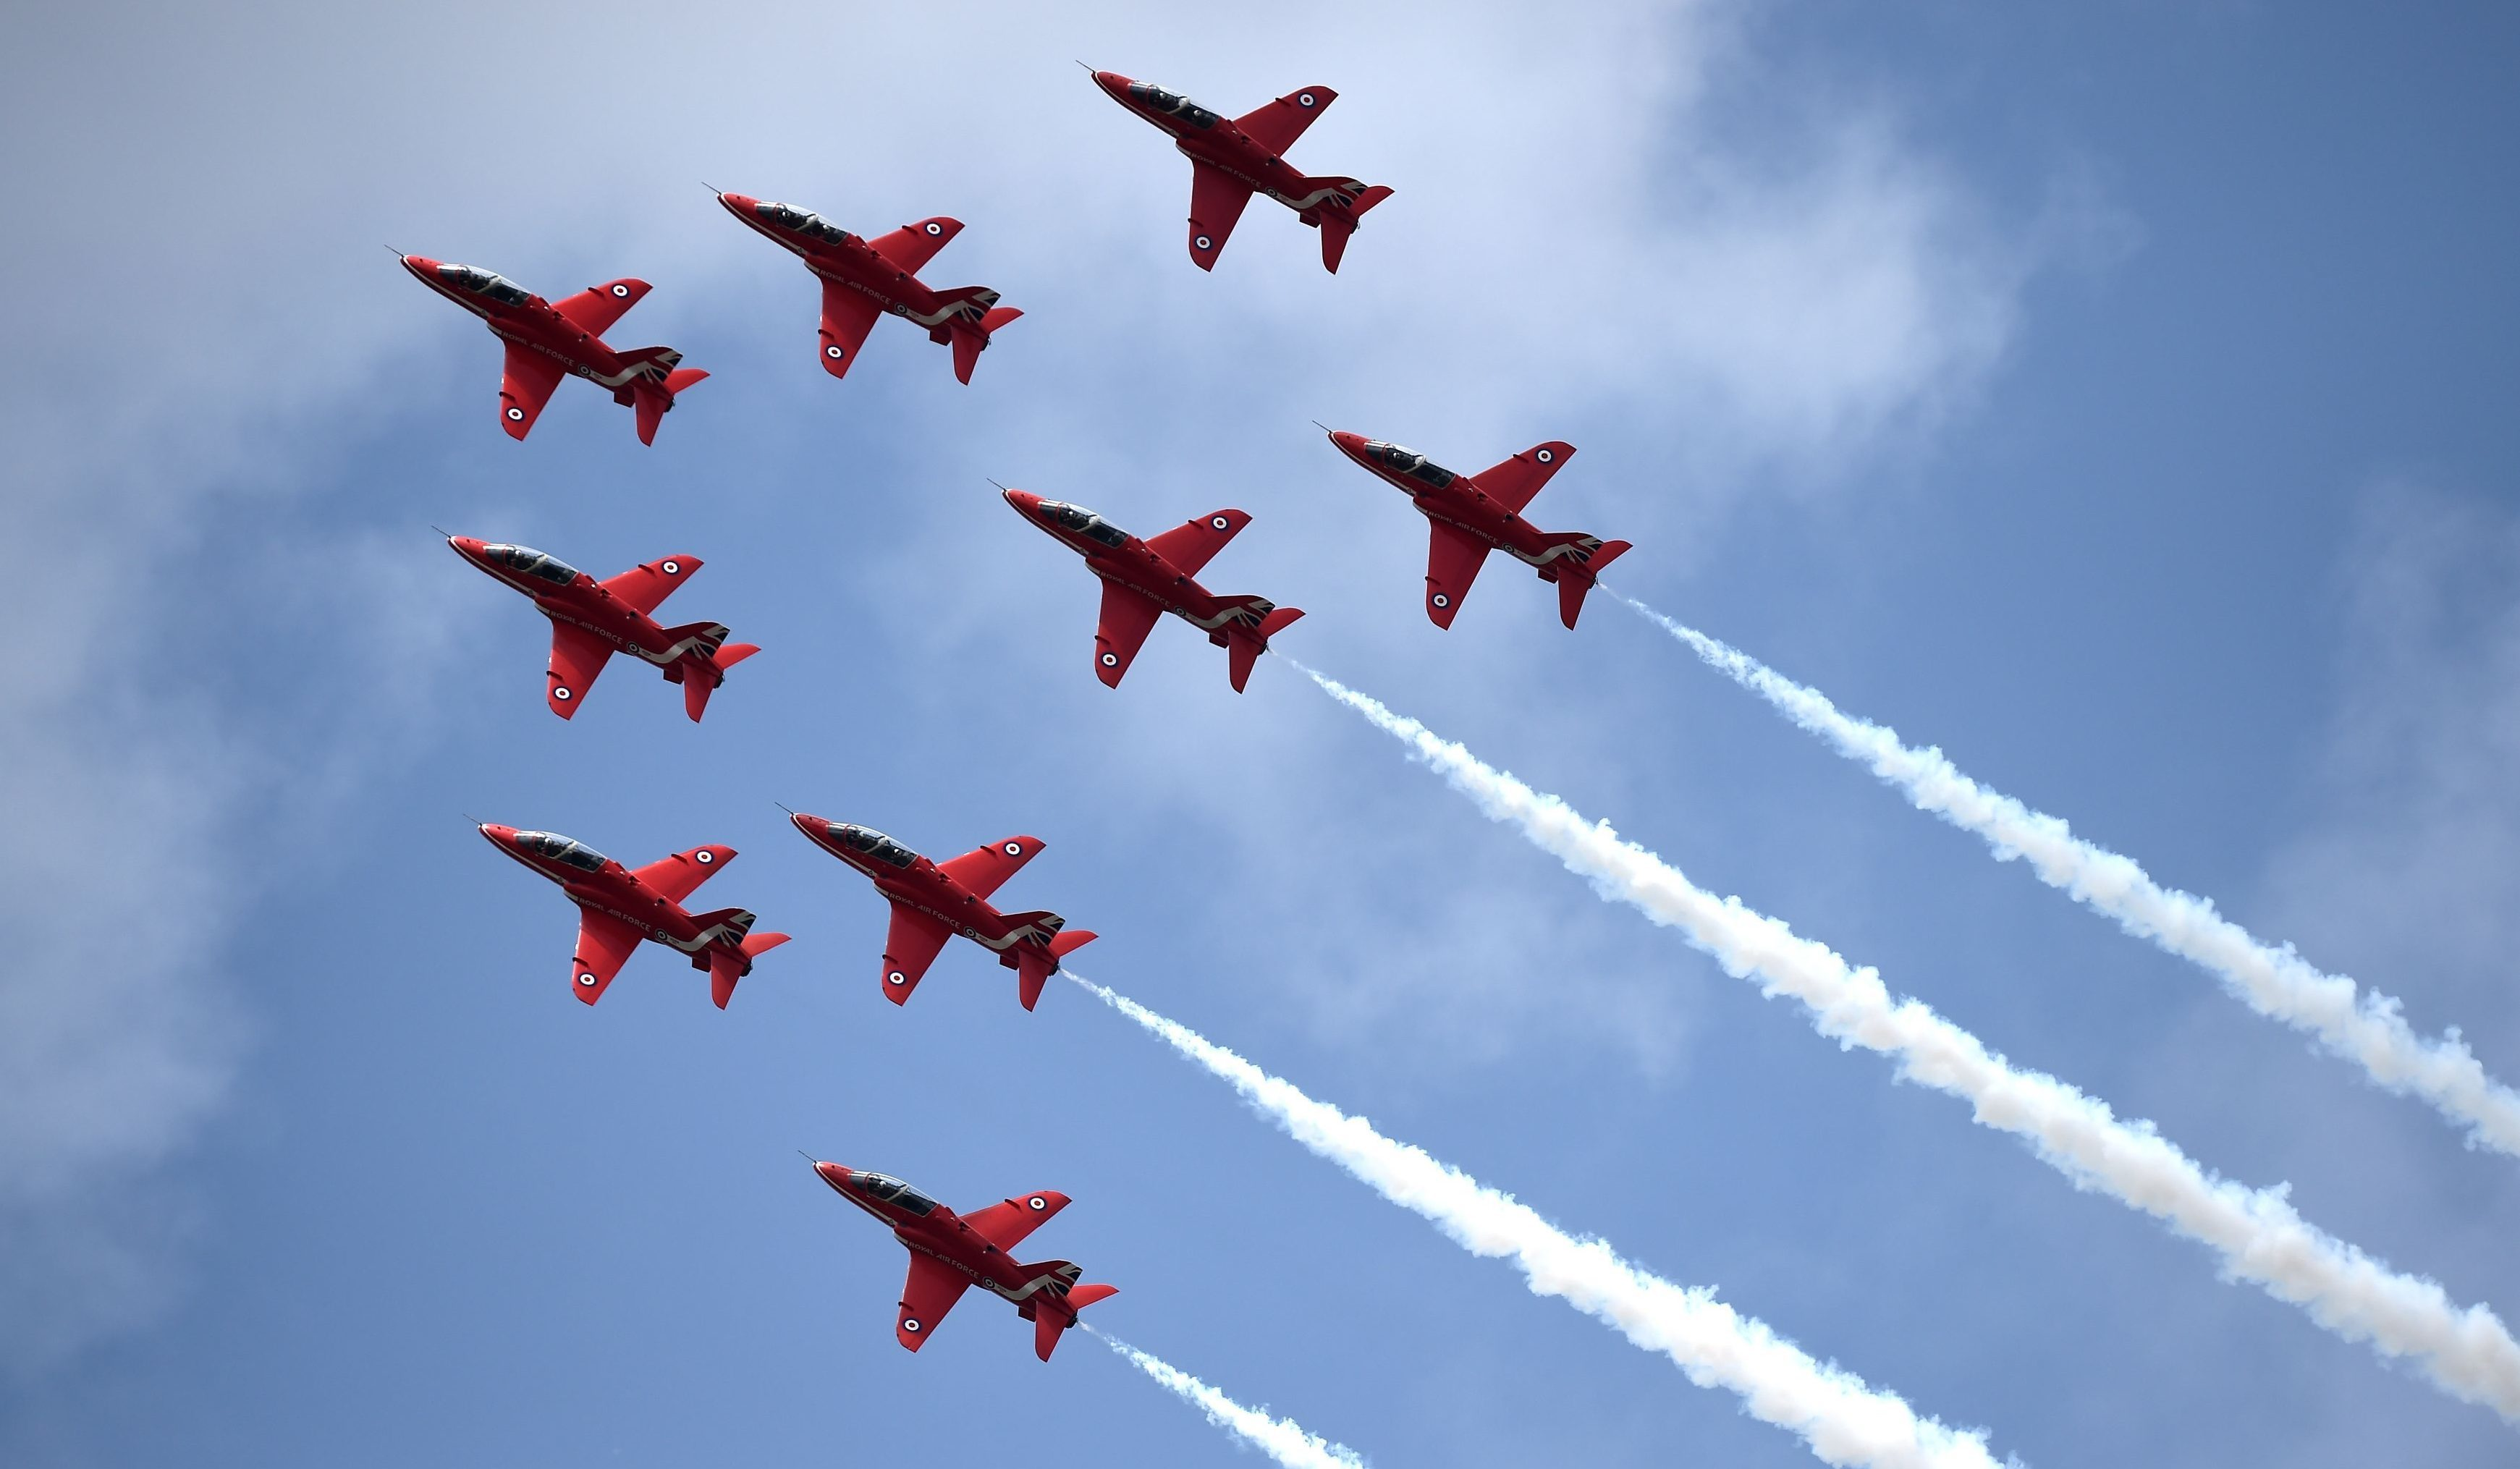 The Red Arrows.